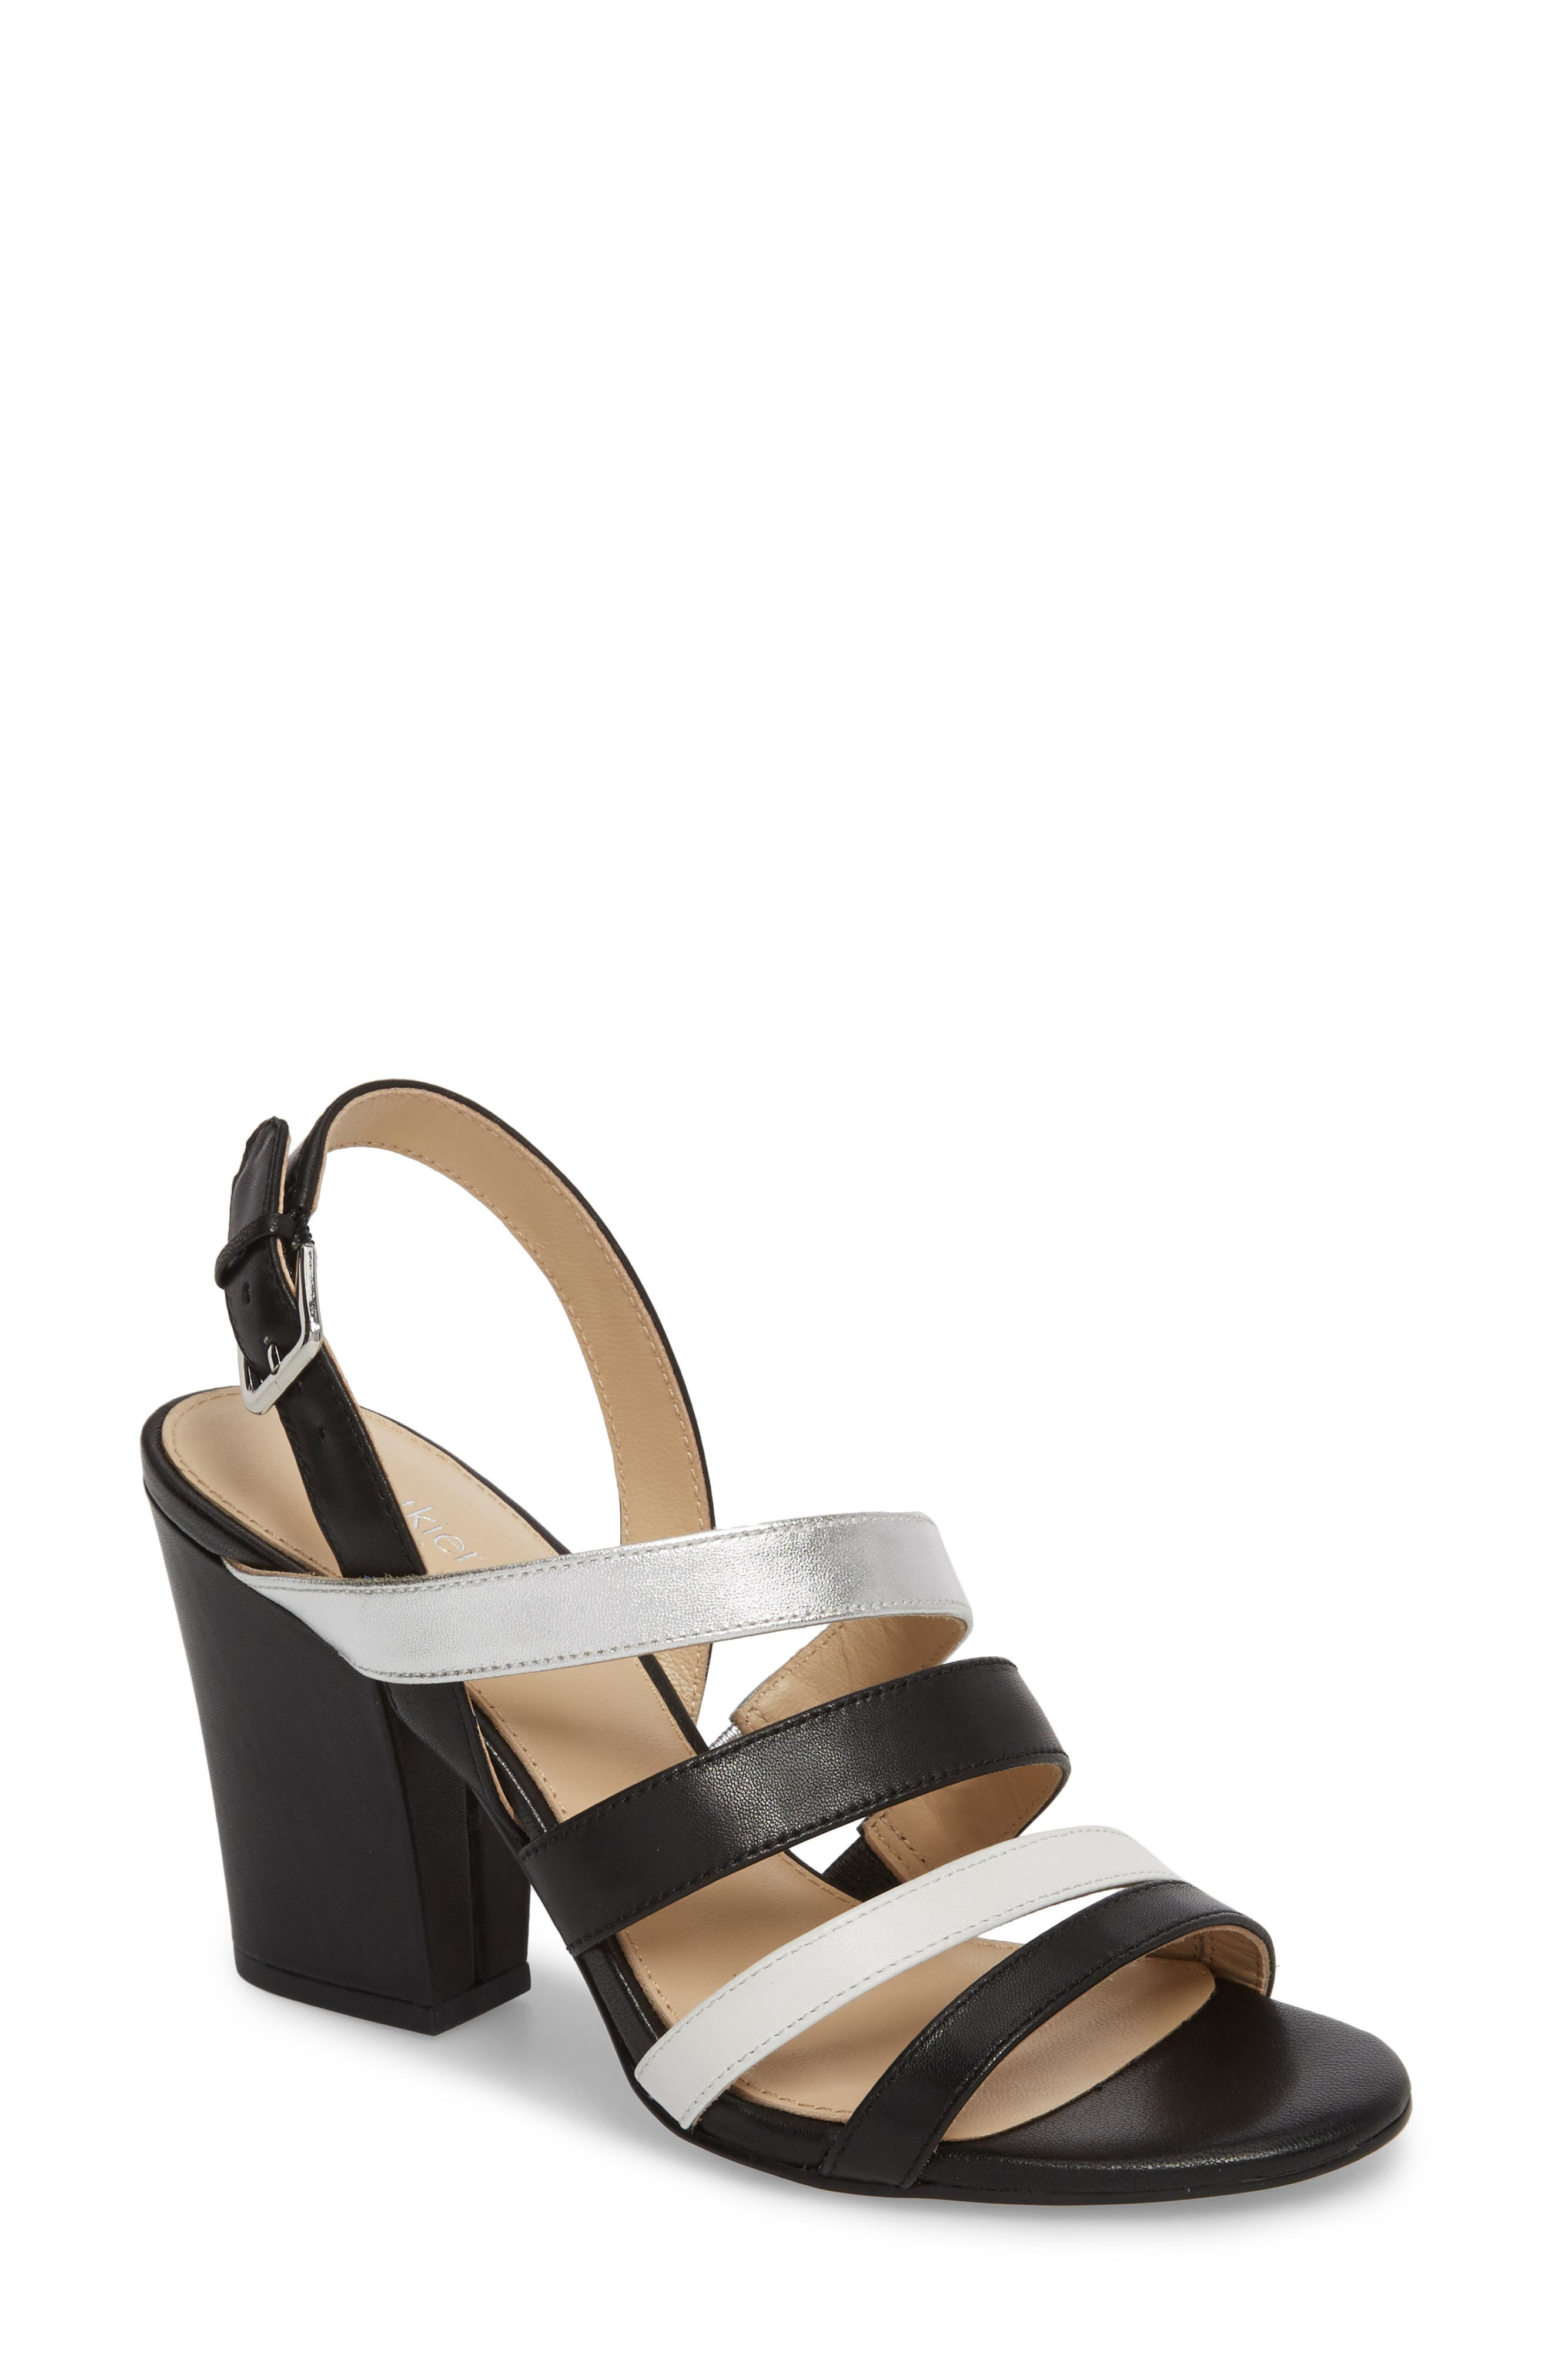 Sera Sandal,                         Main,                         color, Black Multi Leather